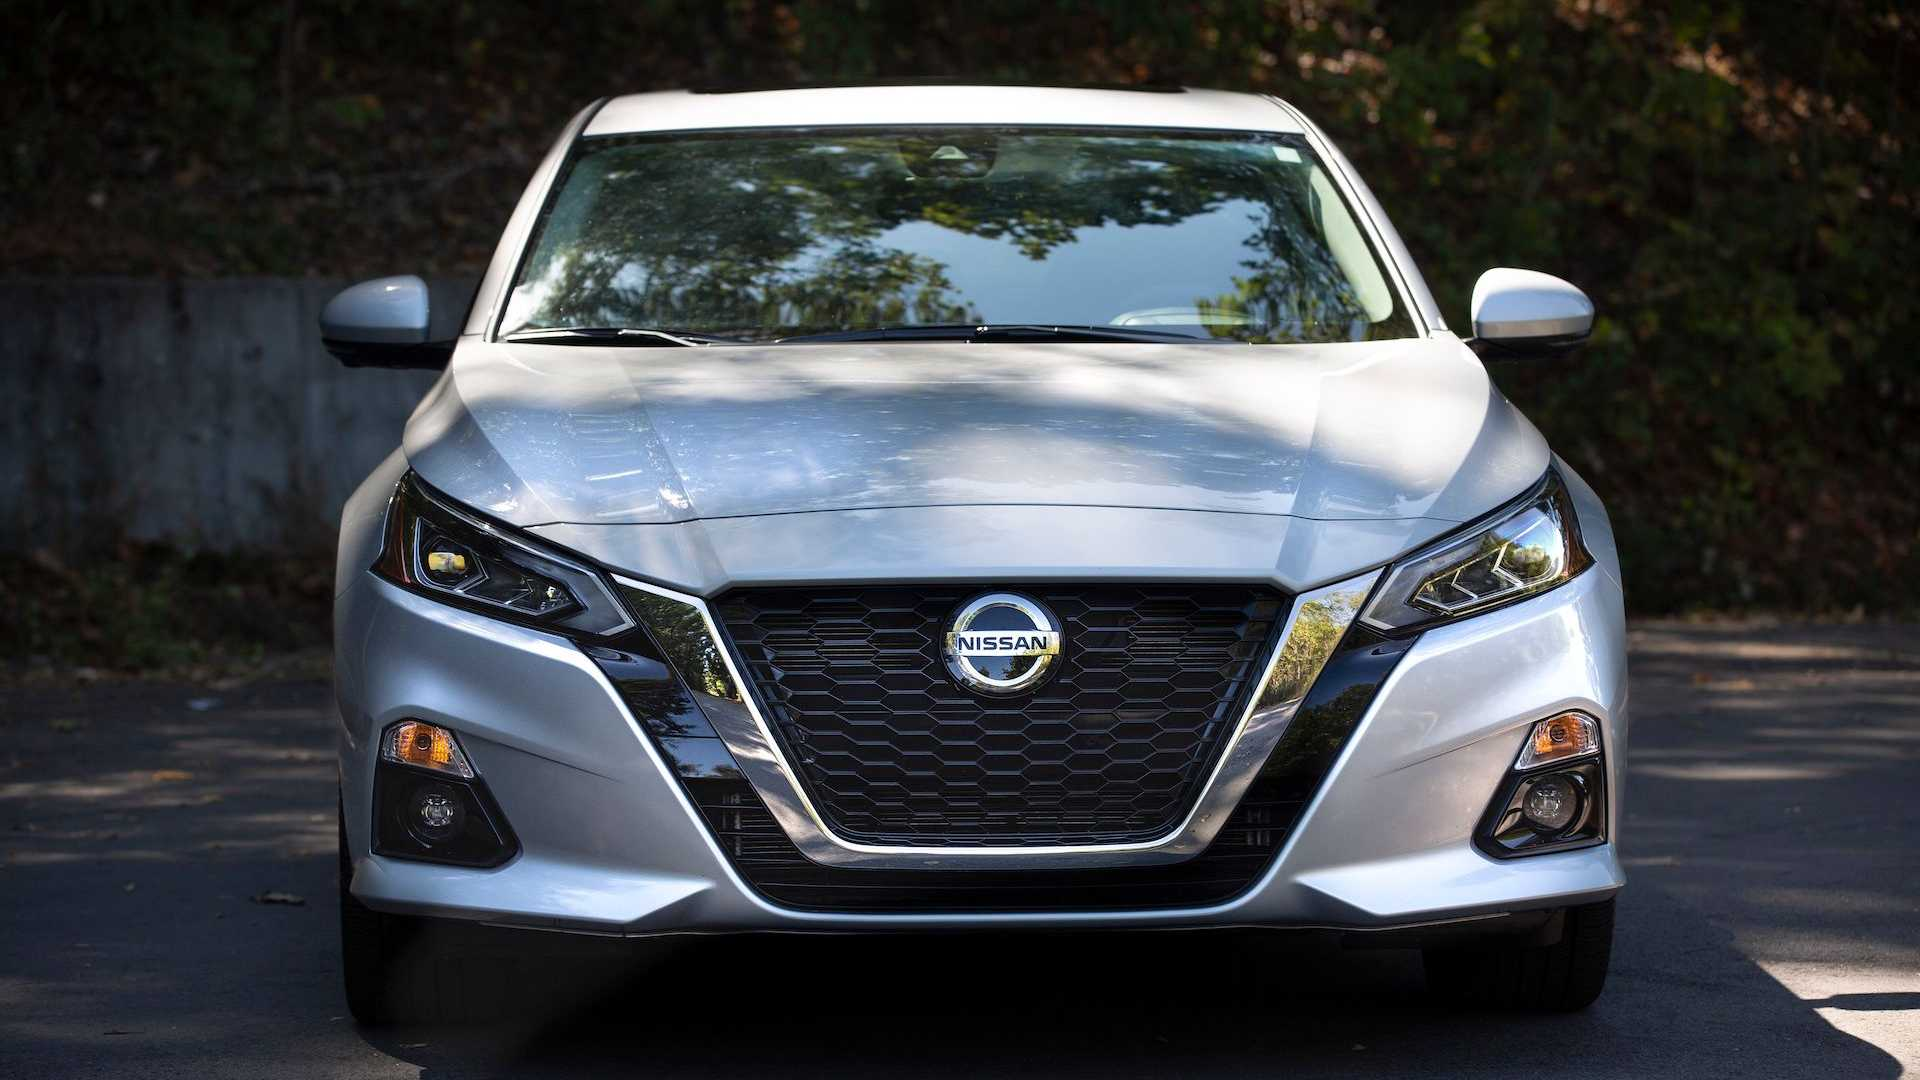 2021 nissan altima gets reshuffled lineup, retains base price